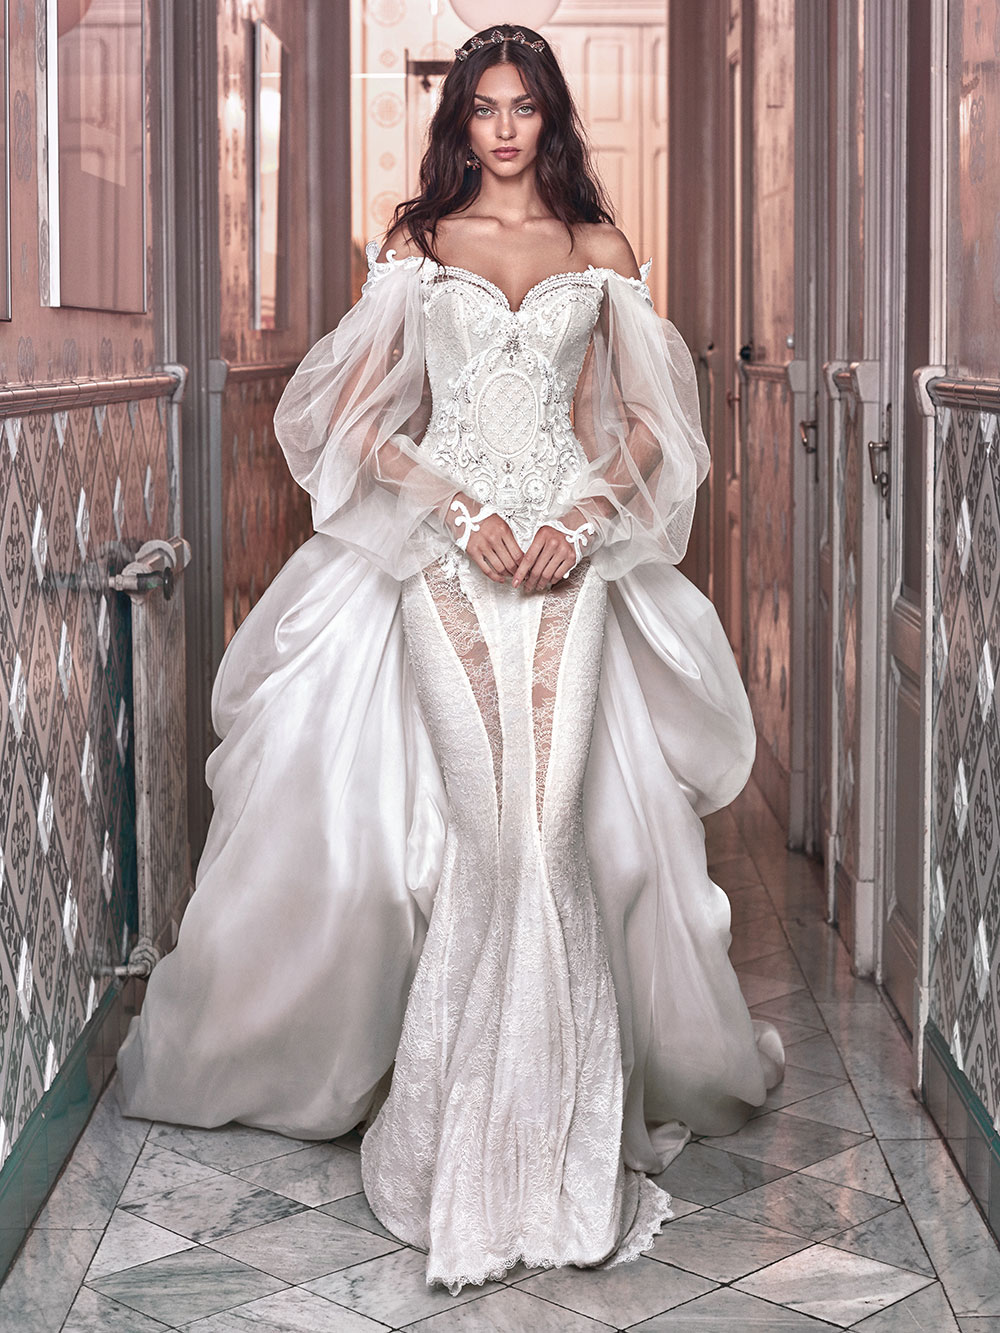 Thelma and Ossie train - Galia Lahav Spring 2018 Collection. www.theweddingnotebook.com